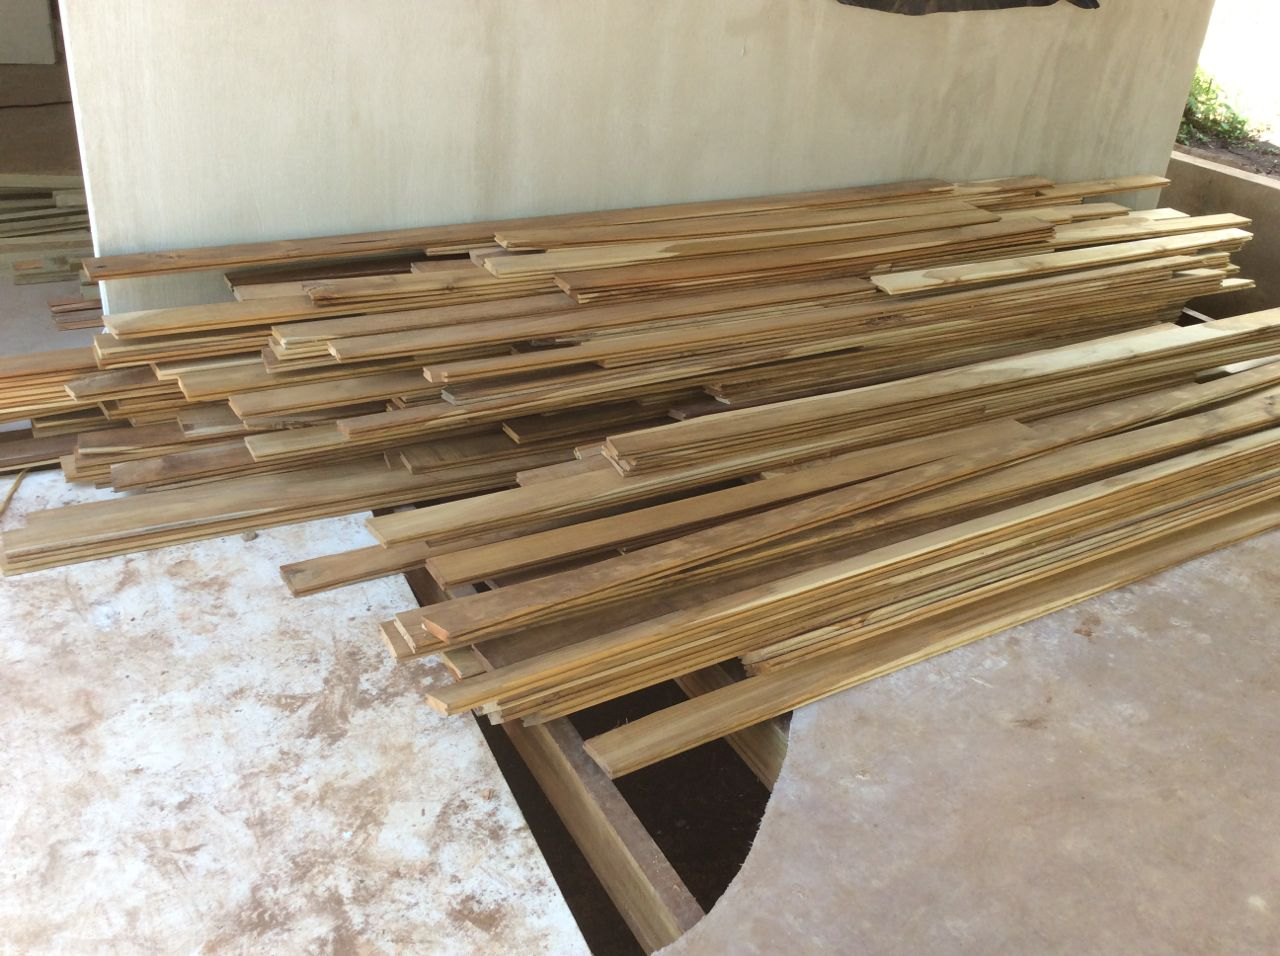 Deck teak with clips